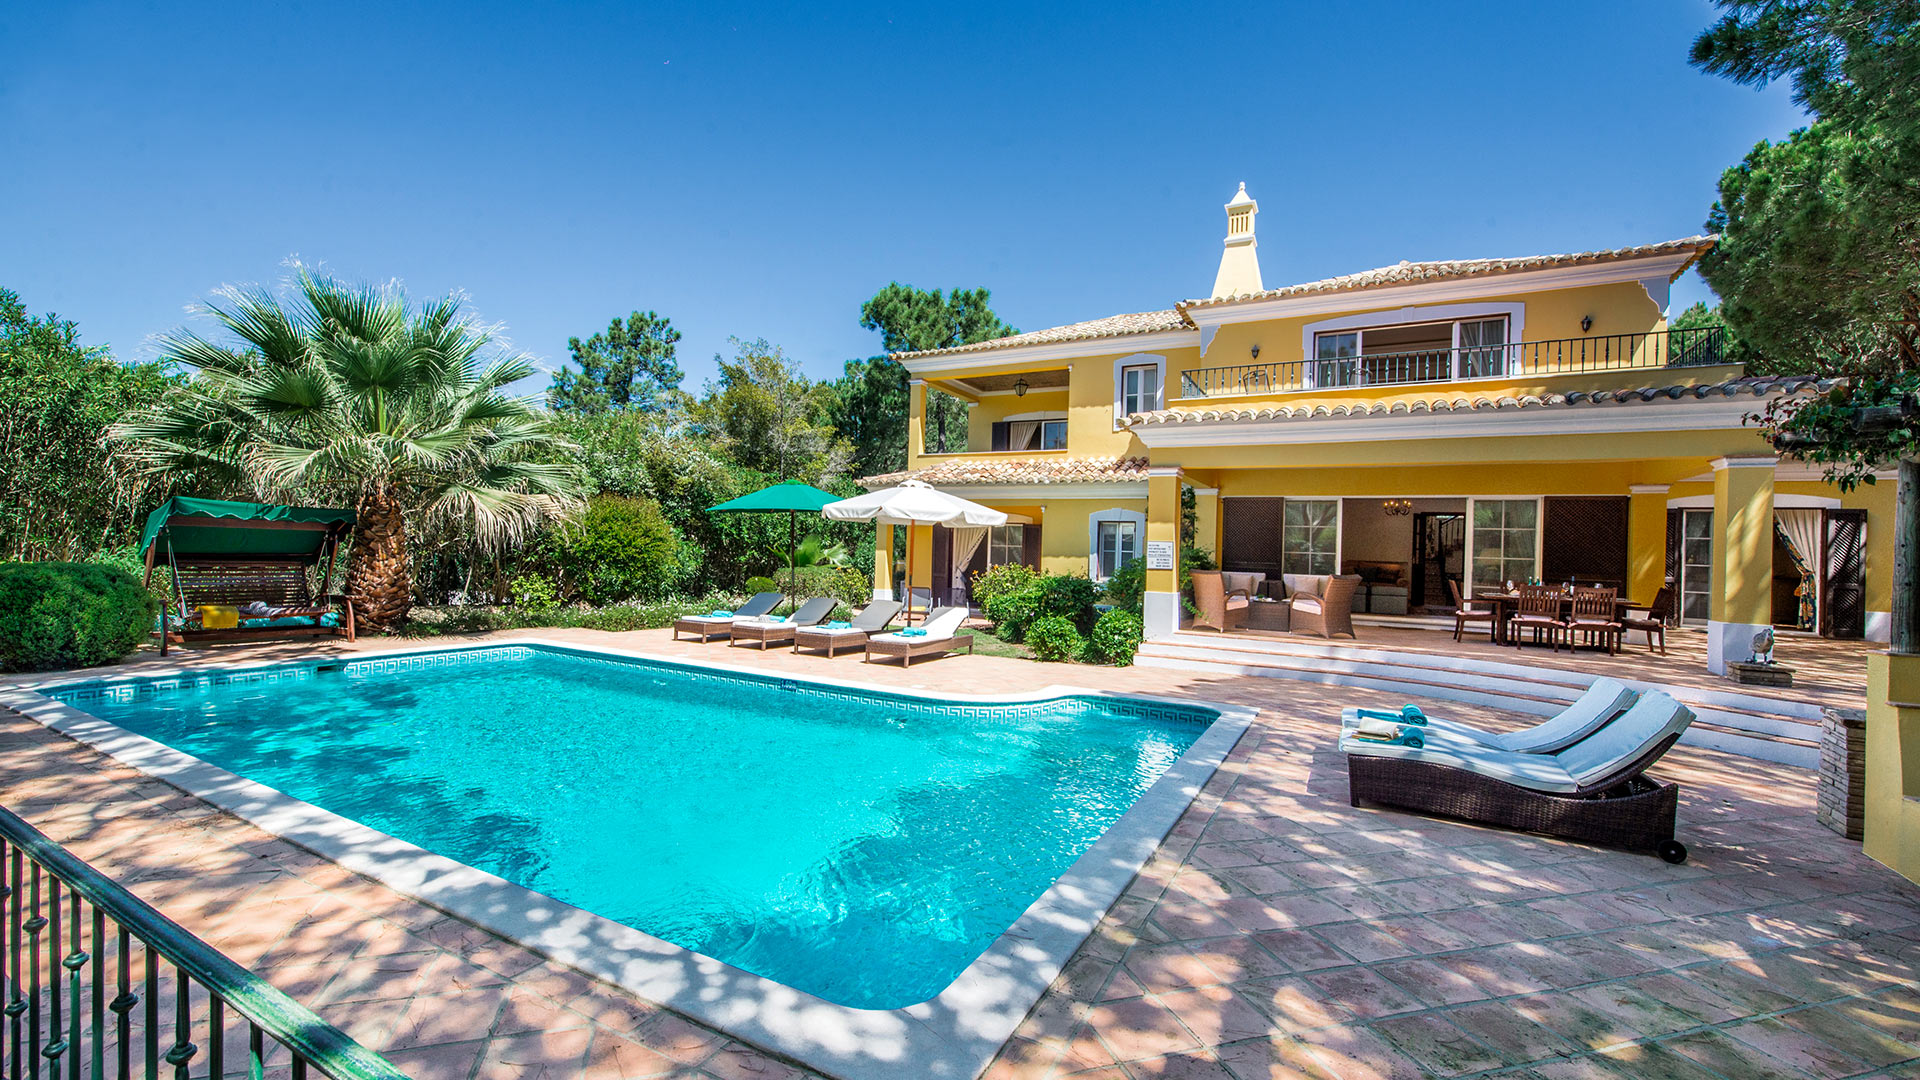 Villa Villa Piaz, Location à Algarve